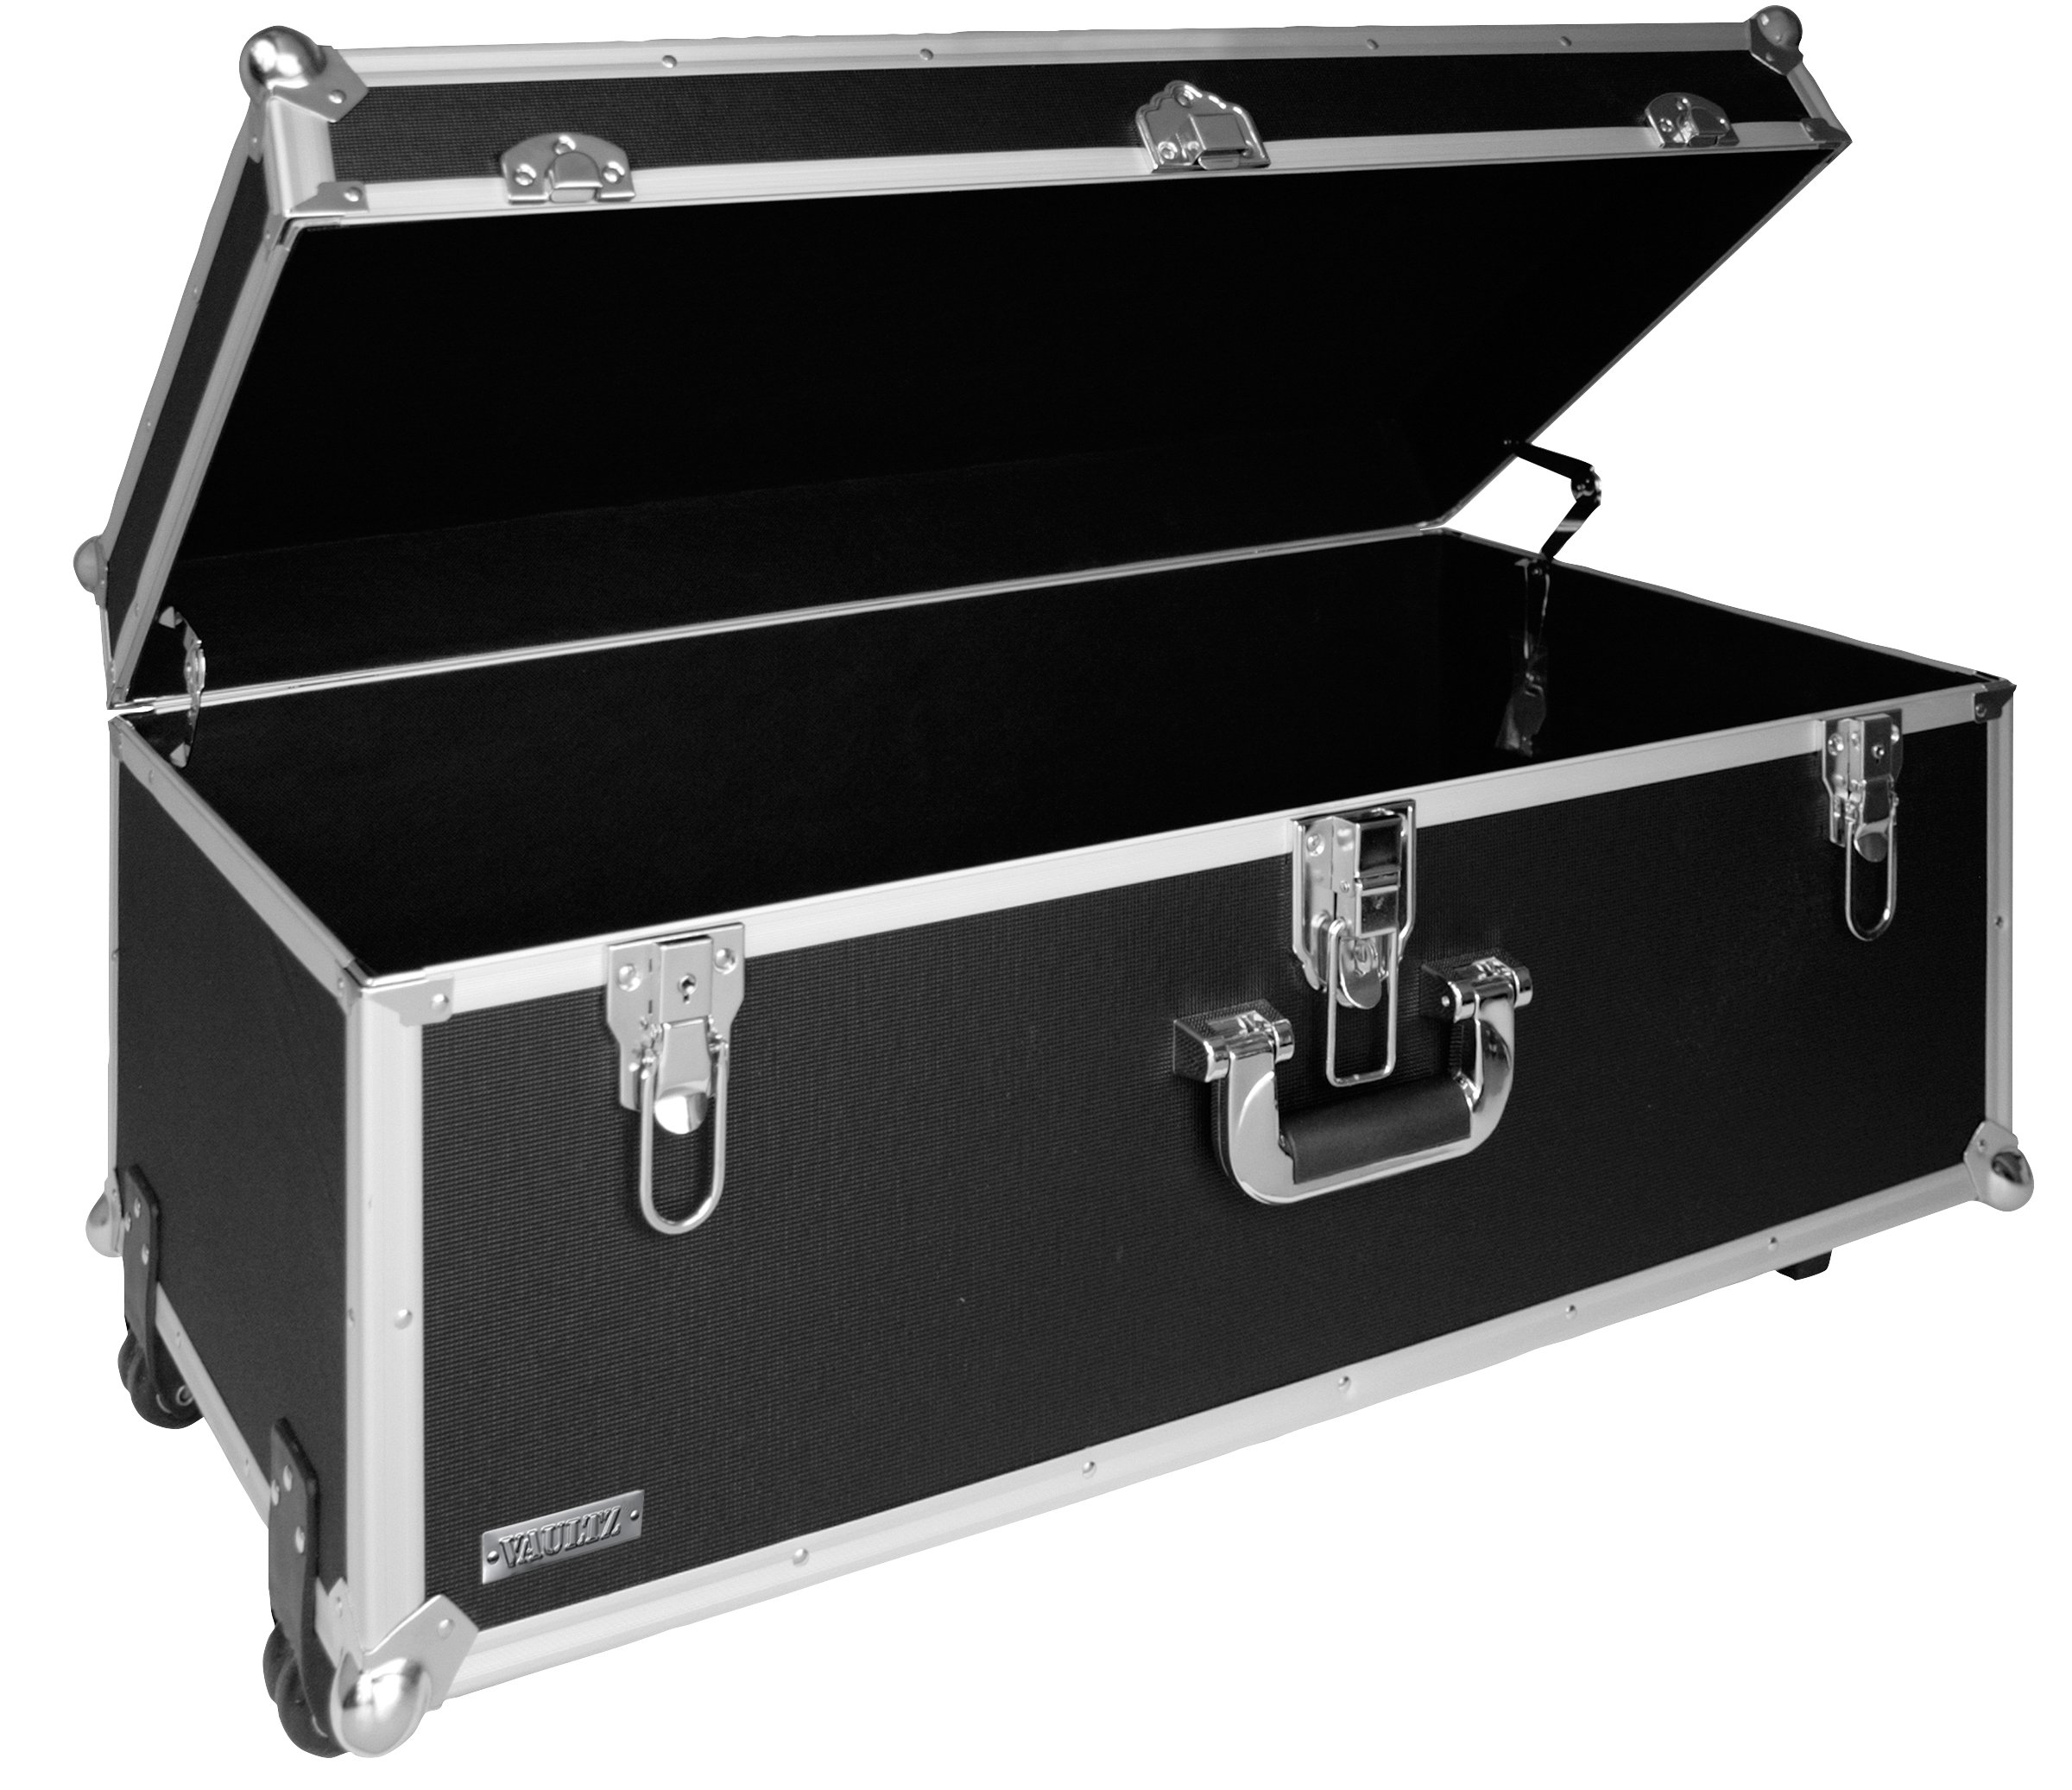 Vaultz 14 x 30 x 16 Inches Locking Extra-Large Storage Chest with Wheels, Black (VZ00355)